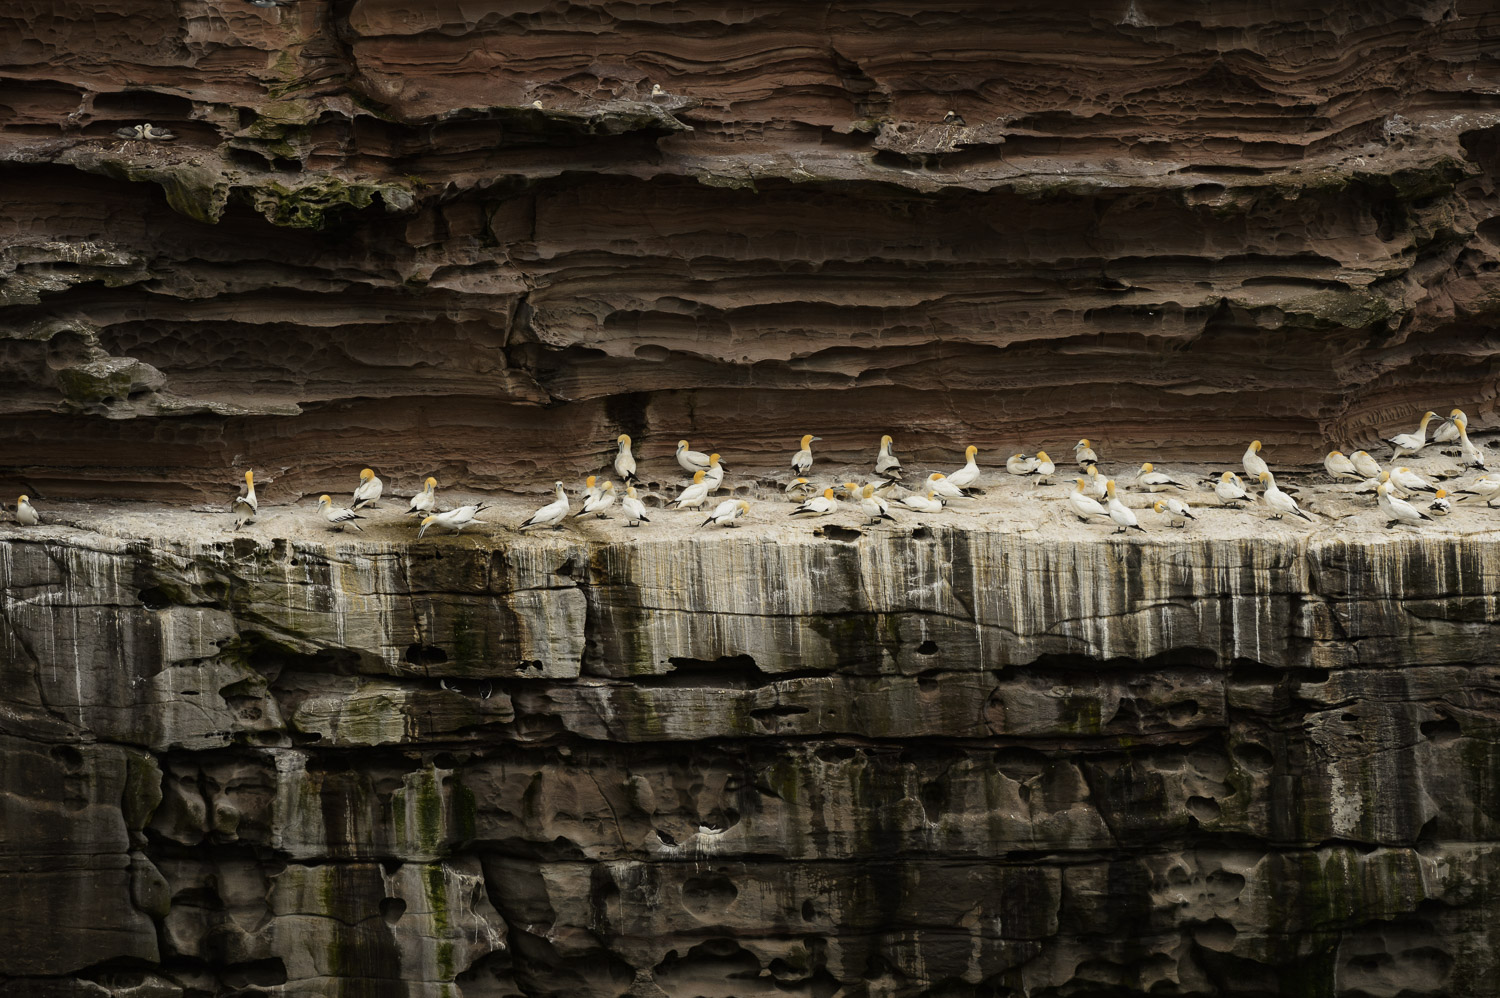 Northern Gannets and Kittiwakes